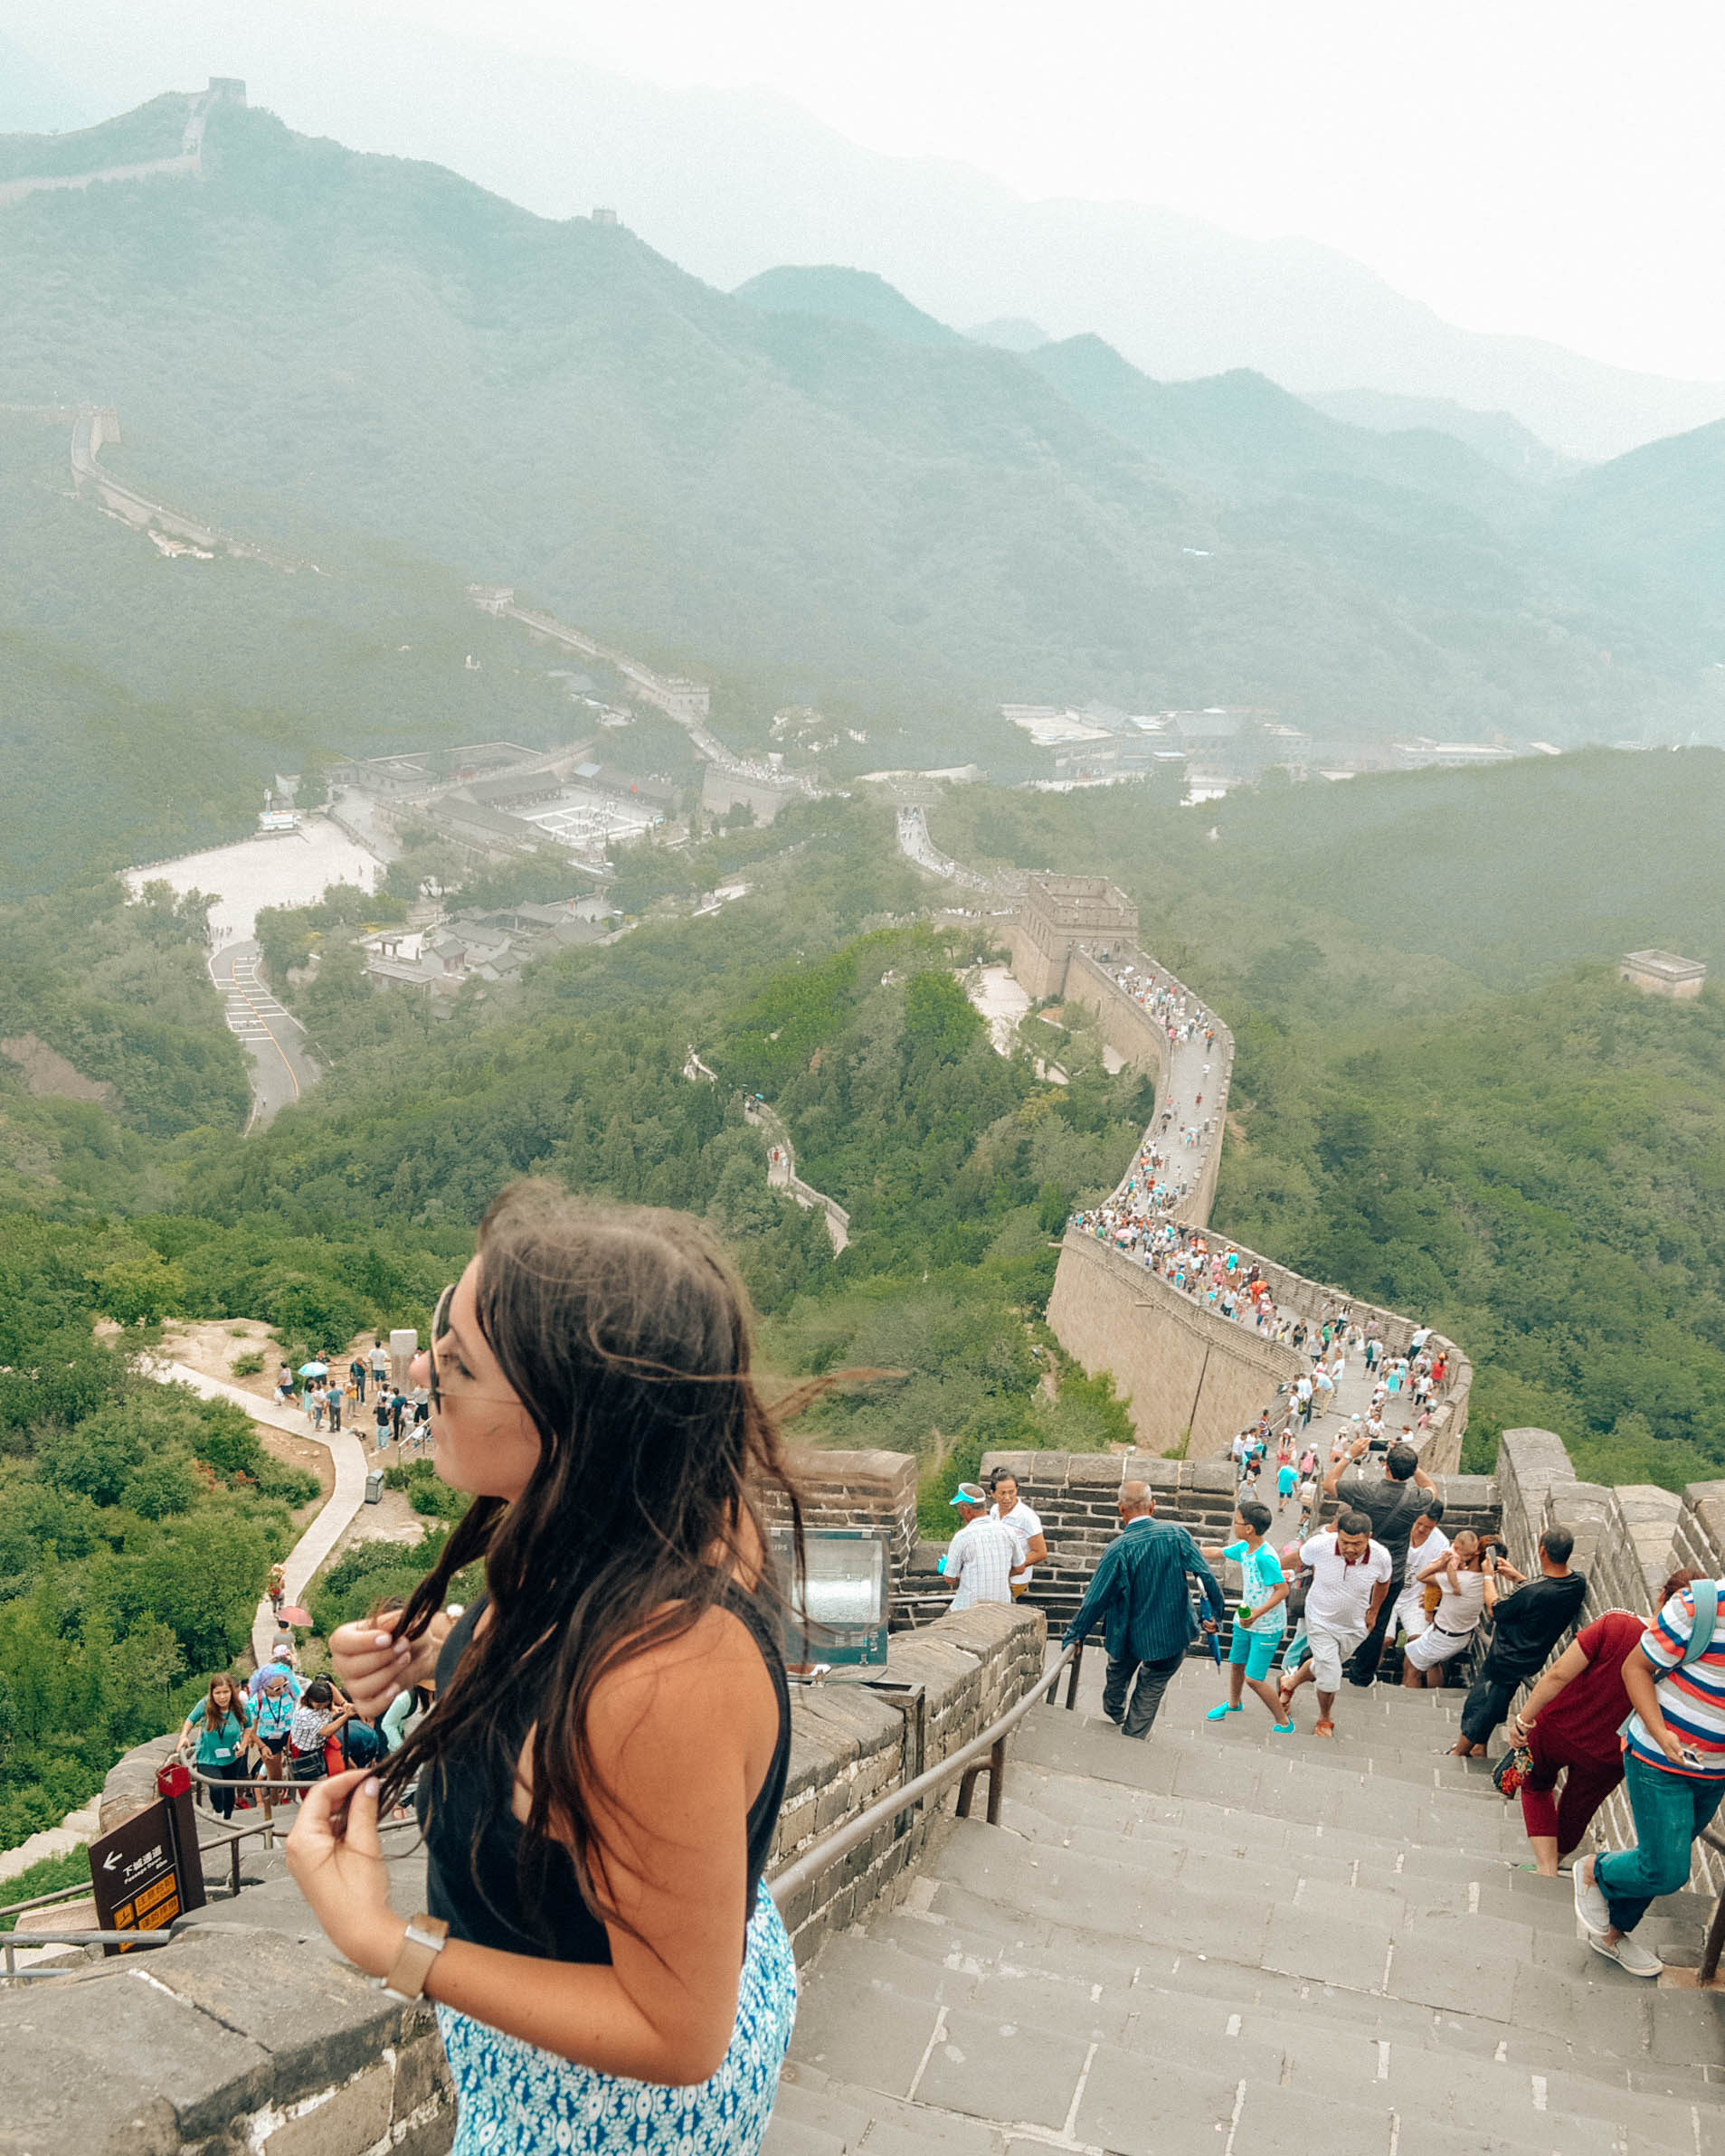 The Great Wall of China - July 2015